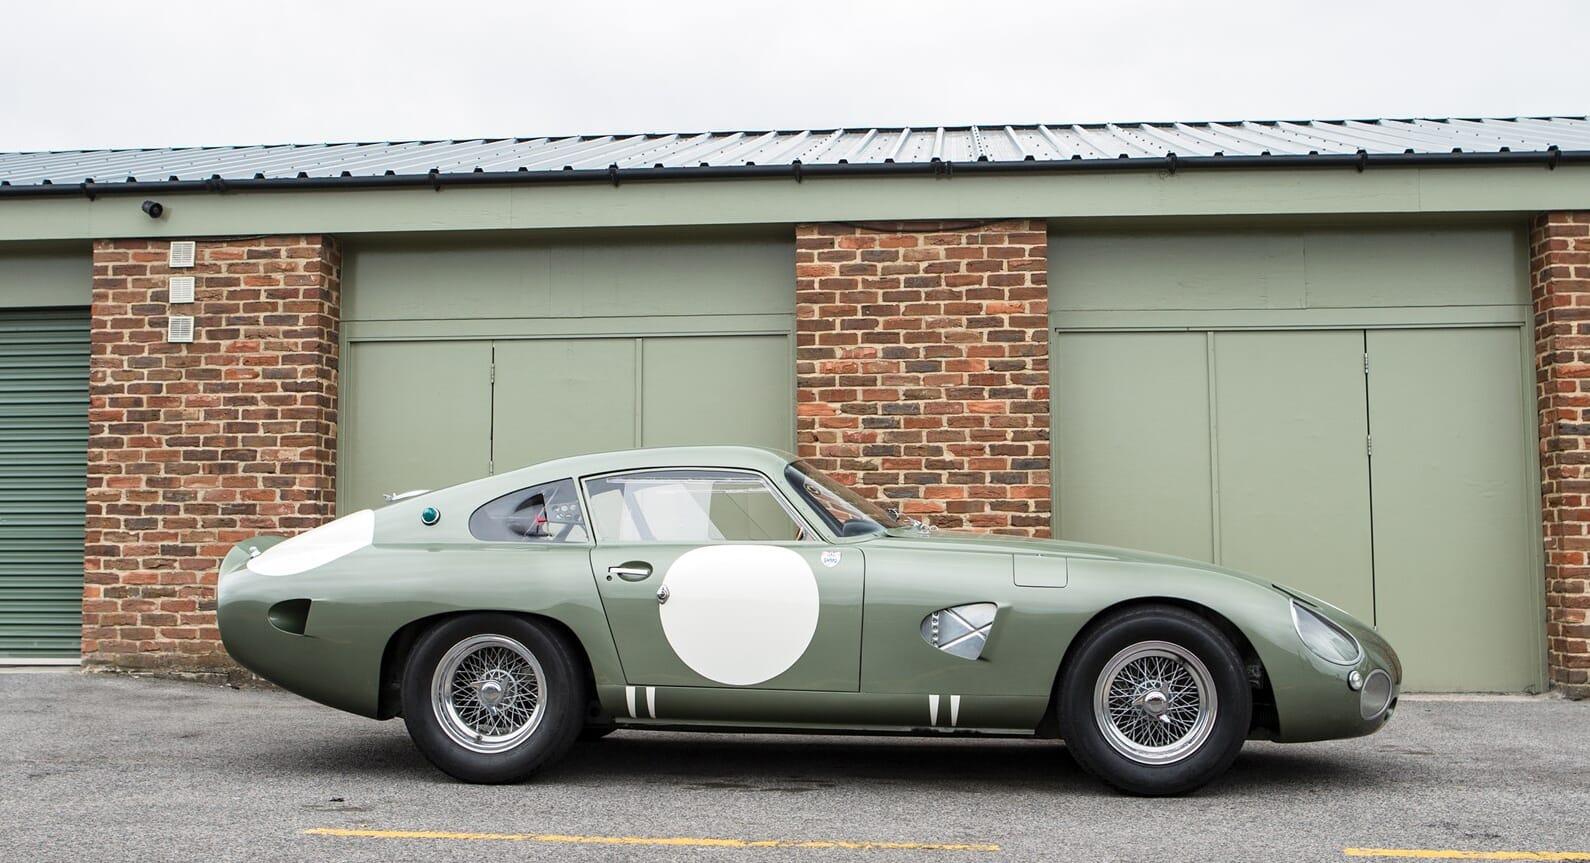 This Unique 1963 Aston Martin DP215 Grand Tourer Is Set To Sell For £19 Million